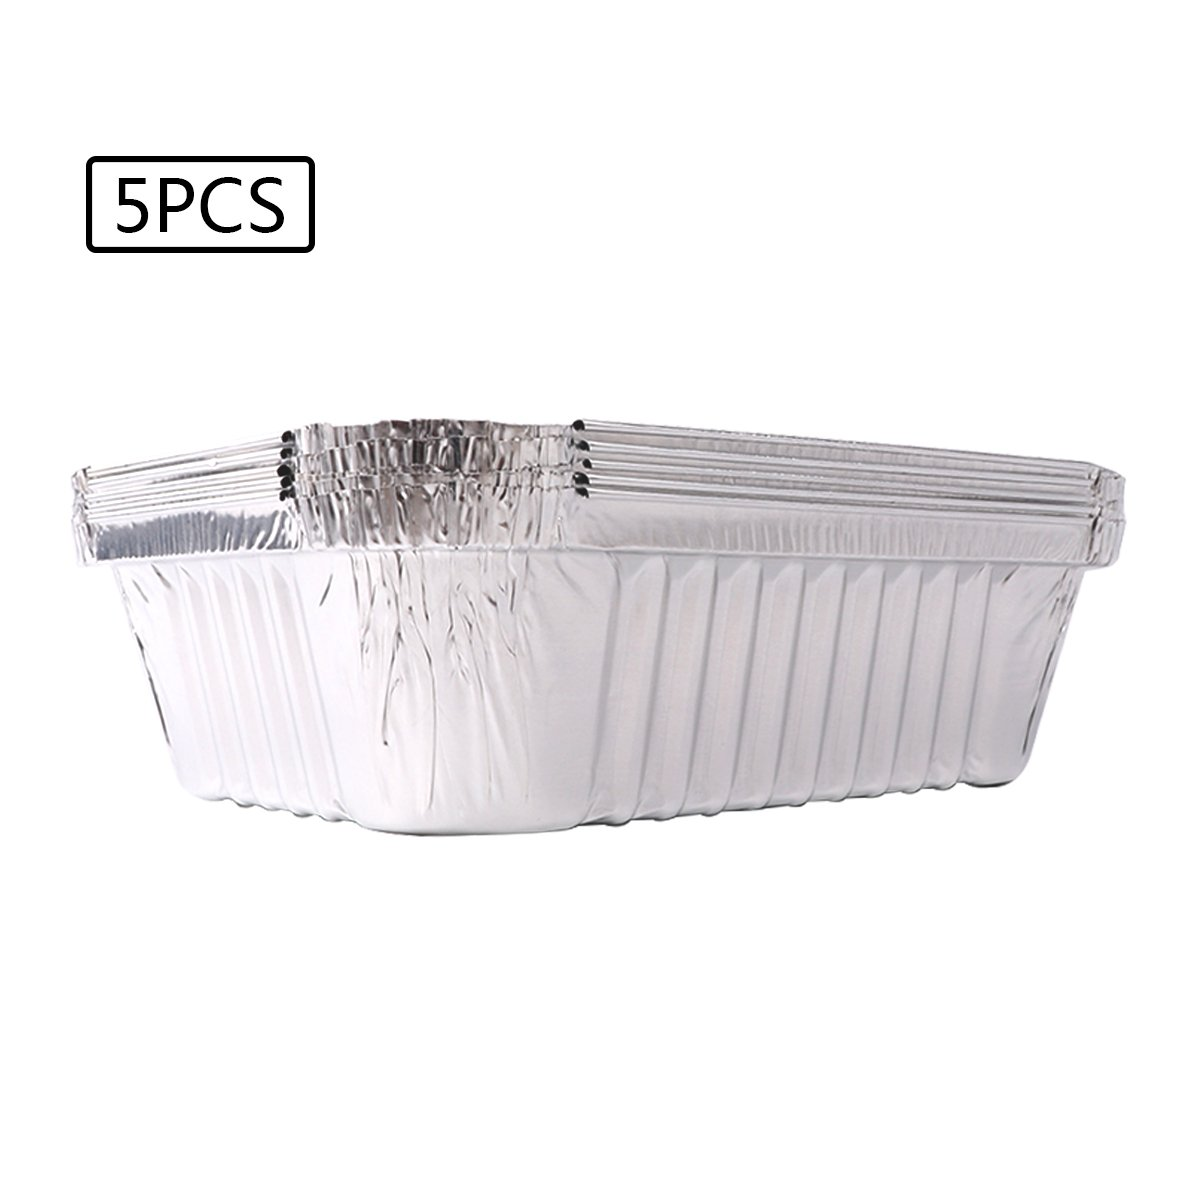 CHICTRY Disposable Barbecue Drip Pans Aluminum Foil Food Containers BBQ Drip Pan Trays Tin Liners for Grease Catch Pans Without Cover 10Pcs One Size